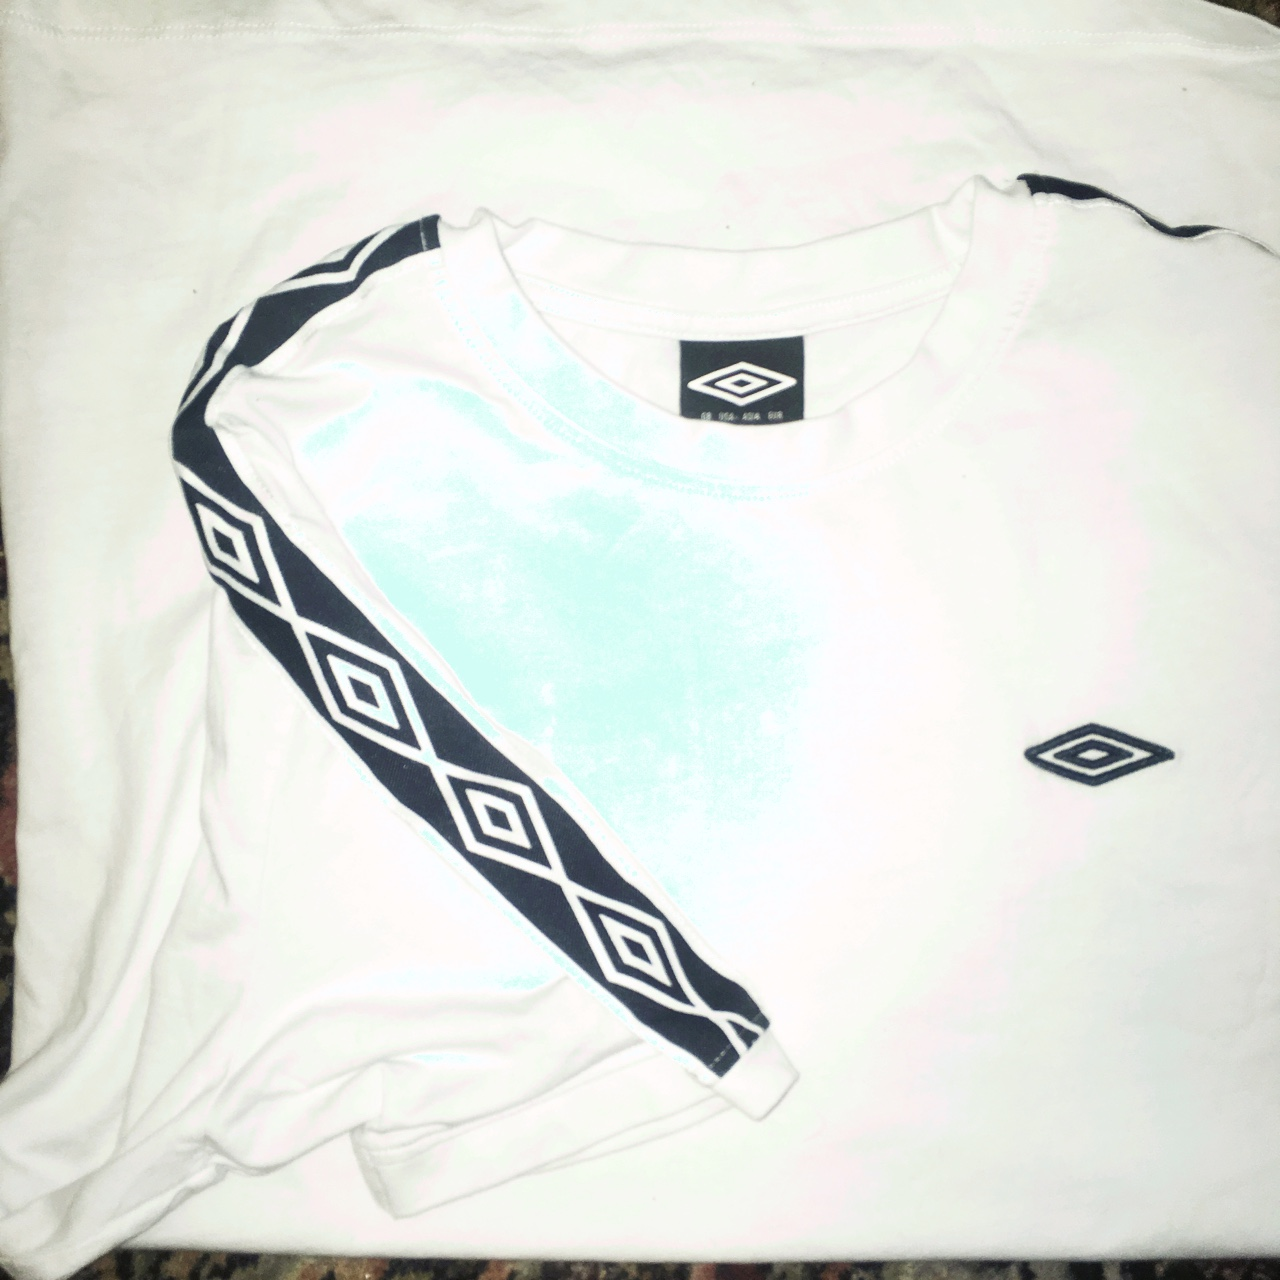 f16bd97b0 Umbro shirt Size  Large Short sleeve ringer style Similar to - Depop